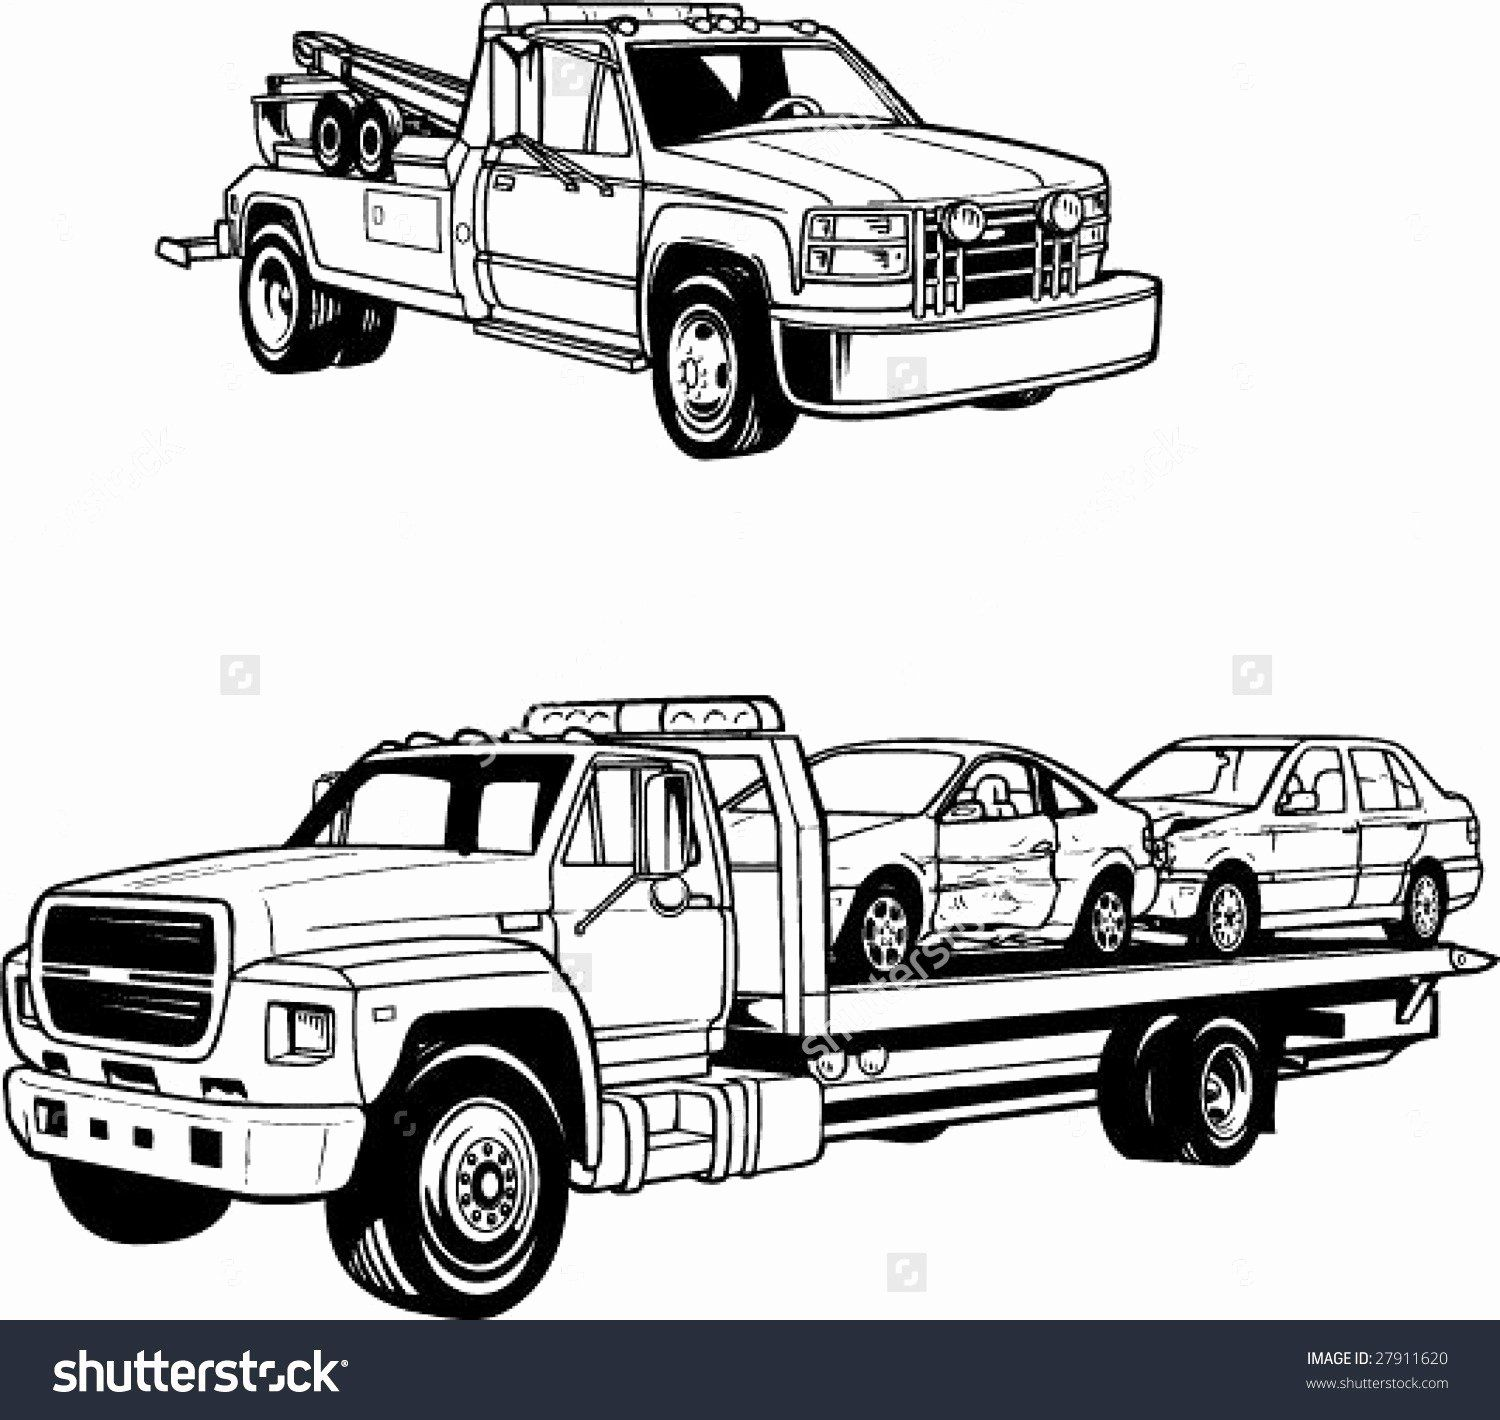 Truck Coloring Pages – coloring.rocks! | 1420x1500